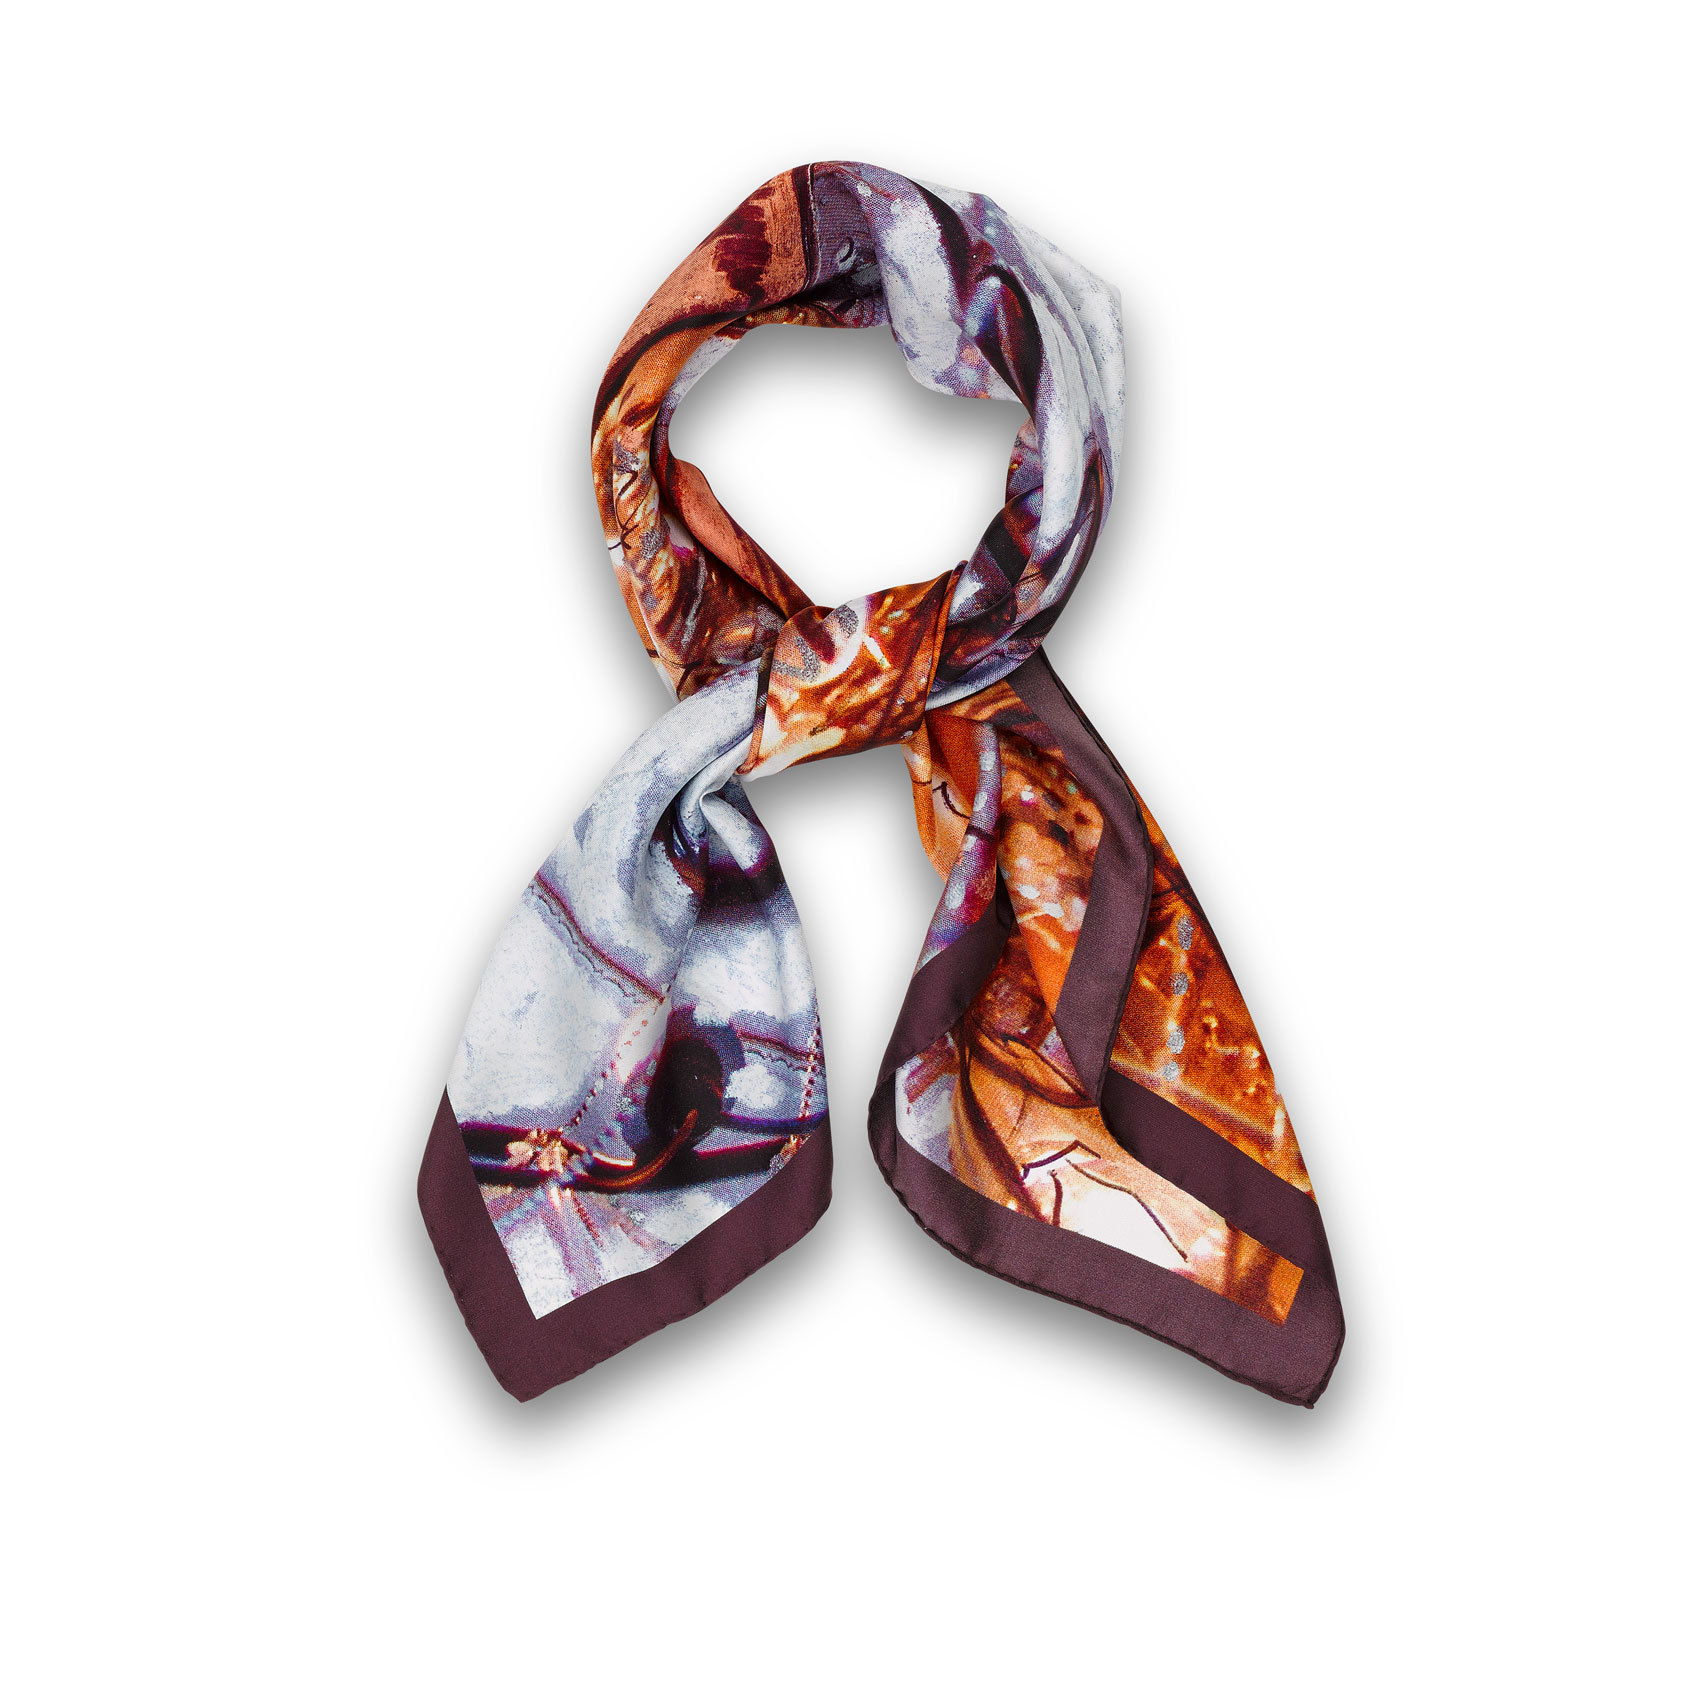 Zermatt Unplugged Foulard, Silk, Twill